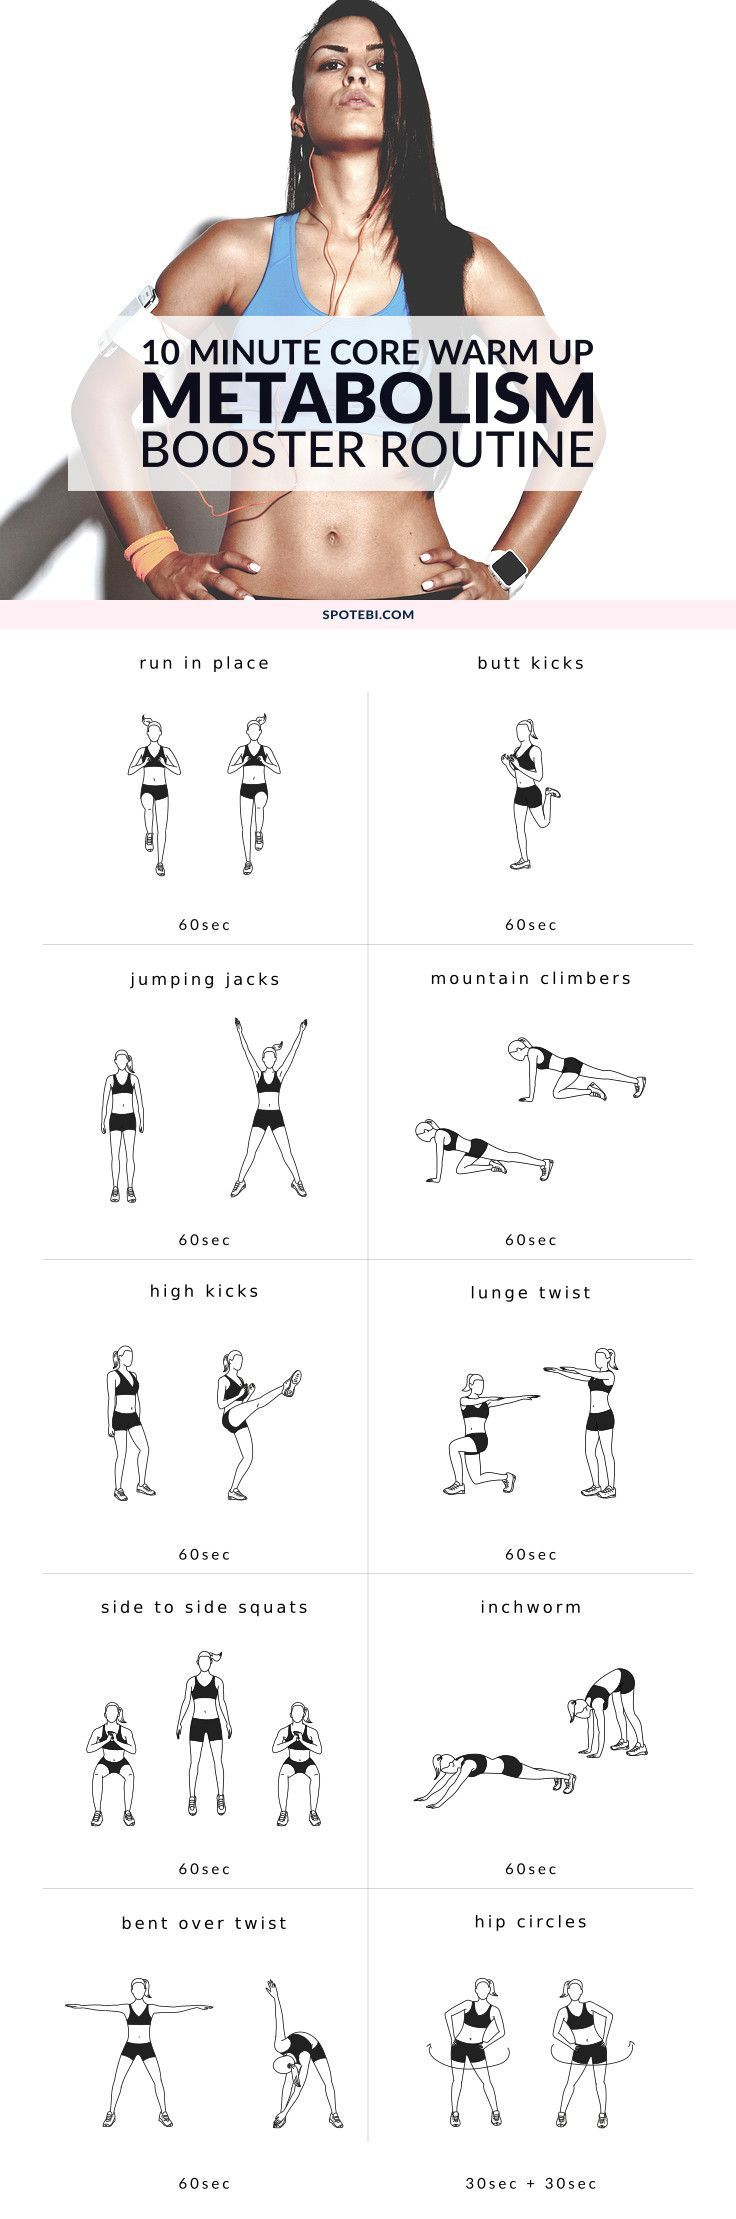 See more here ► https://www.youtube.com/watch?v=3qKhPjyBqW0 Tags: healthy weight loss tips, nutrition tips for losing weight, tips how to lose weight fast - Warm up your abs and lower back with this bodyweight at home core warm up routine. Get your heart pumping and prepare your core for a strengthening workout. http://www.spotebi.com/workout-routines/bodyweight-at-home-core-warm-up-routine/ #exercise #diet #workout #fitness #health